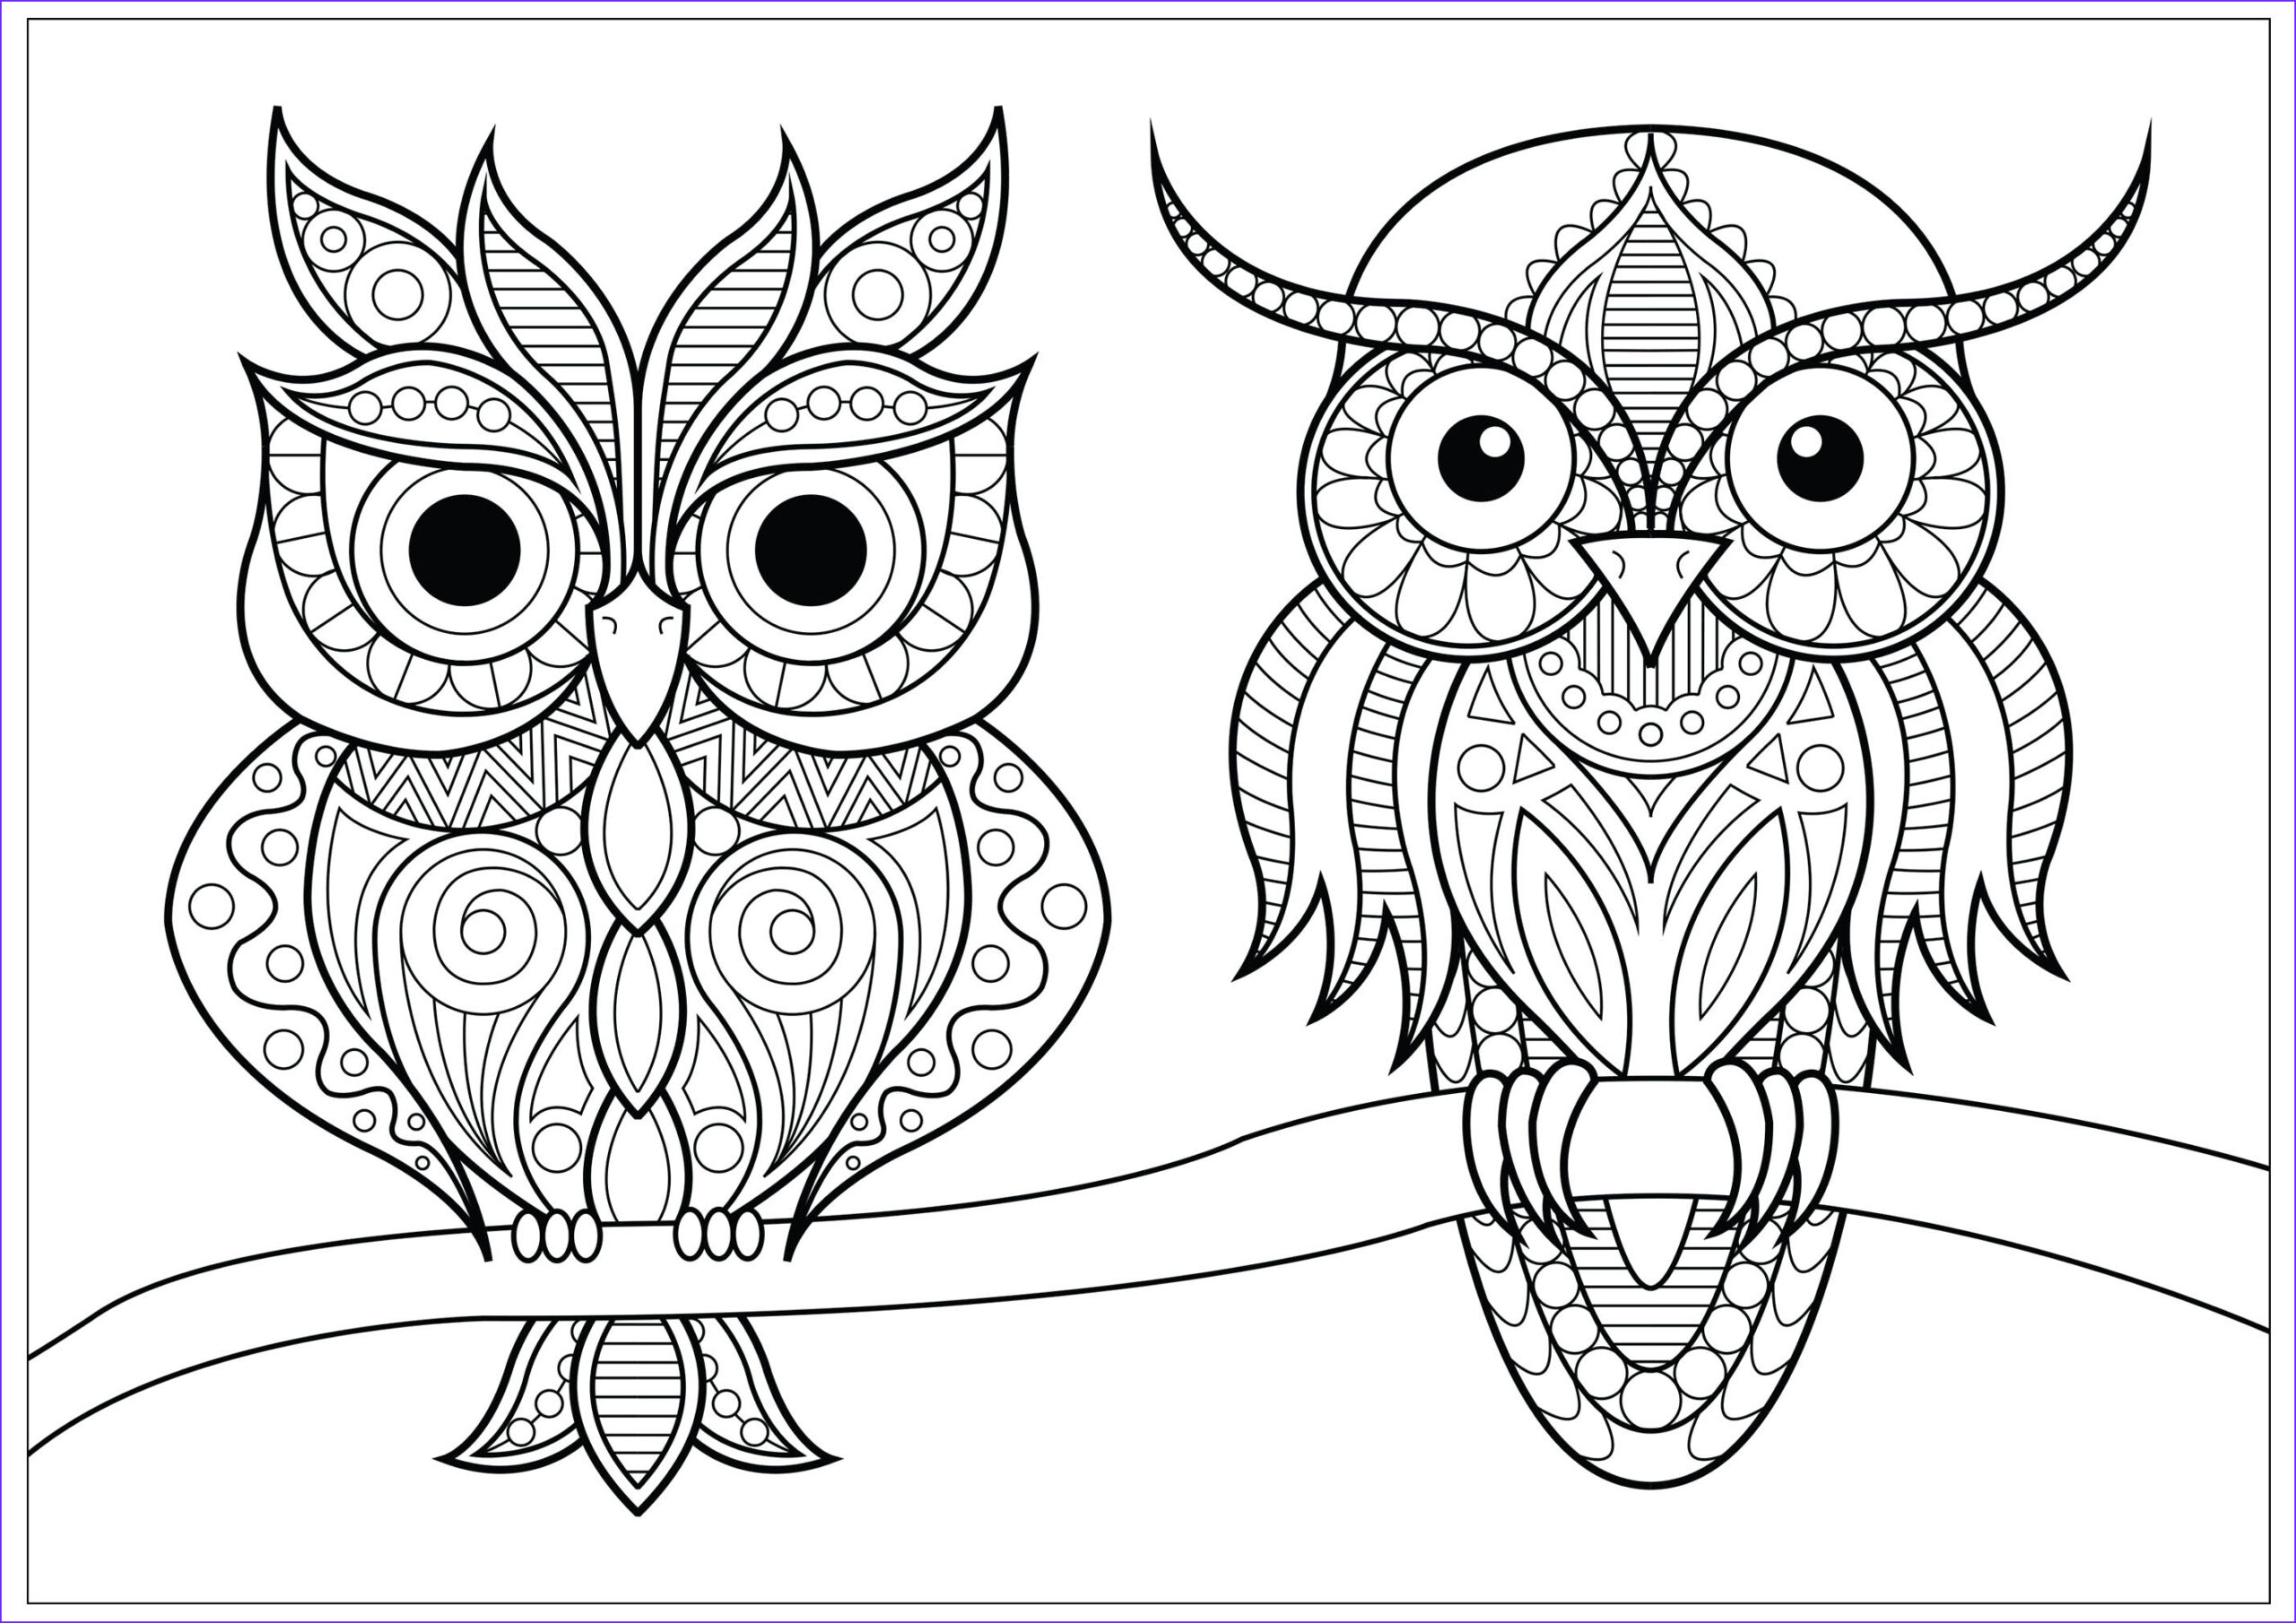 Coloring Pictures Of Owl Inspirational Photos Two Owls with Simple Patterns On Branch Owls Adult